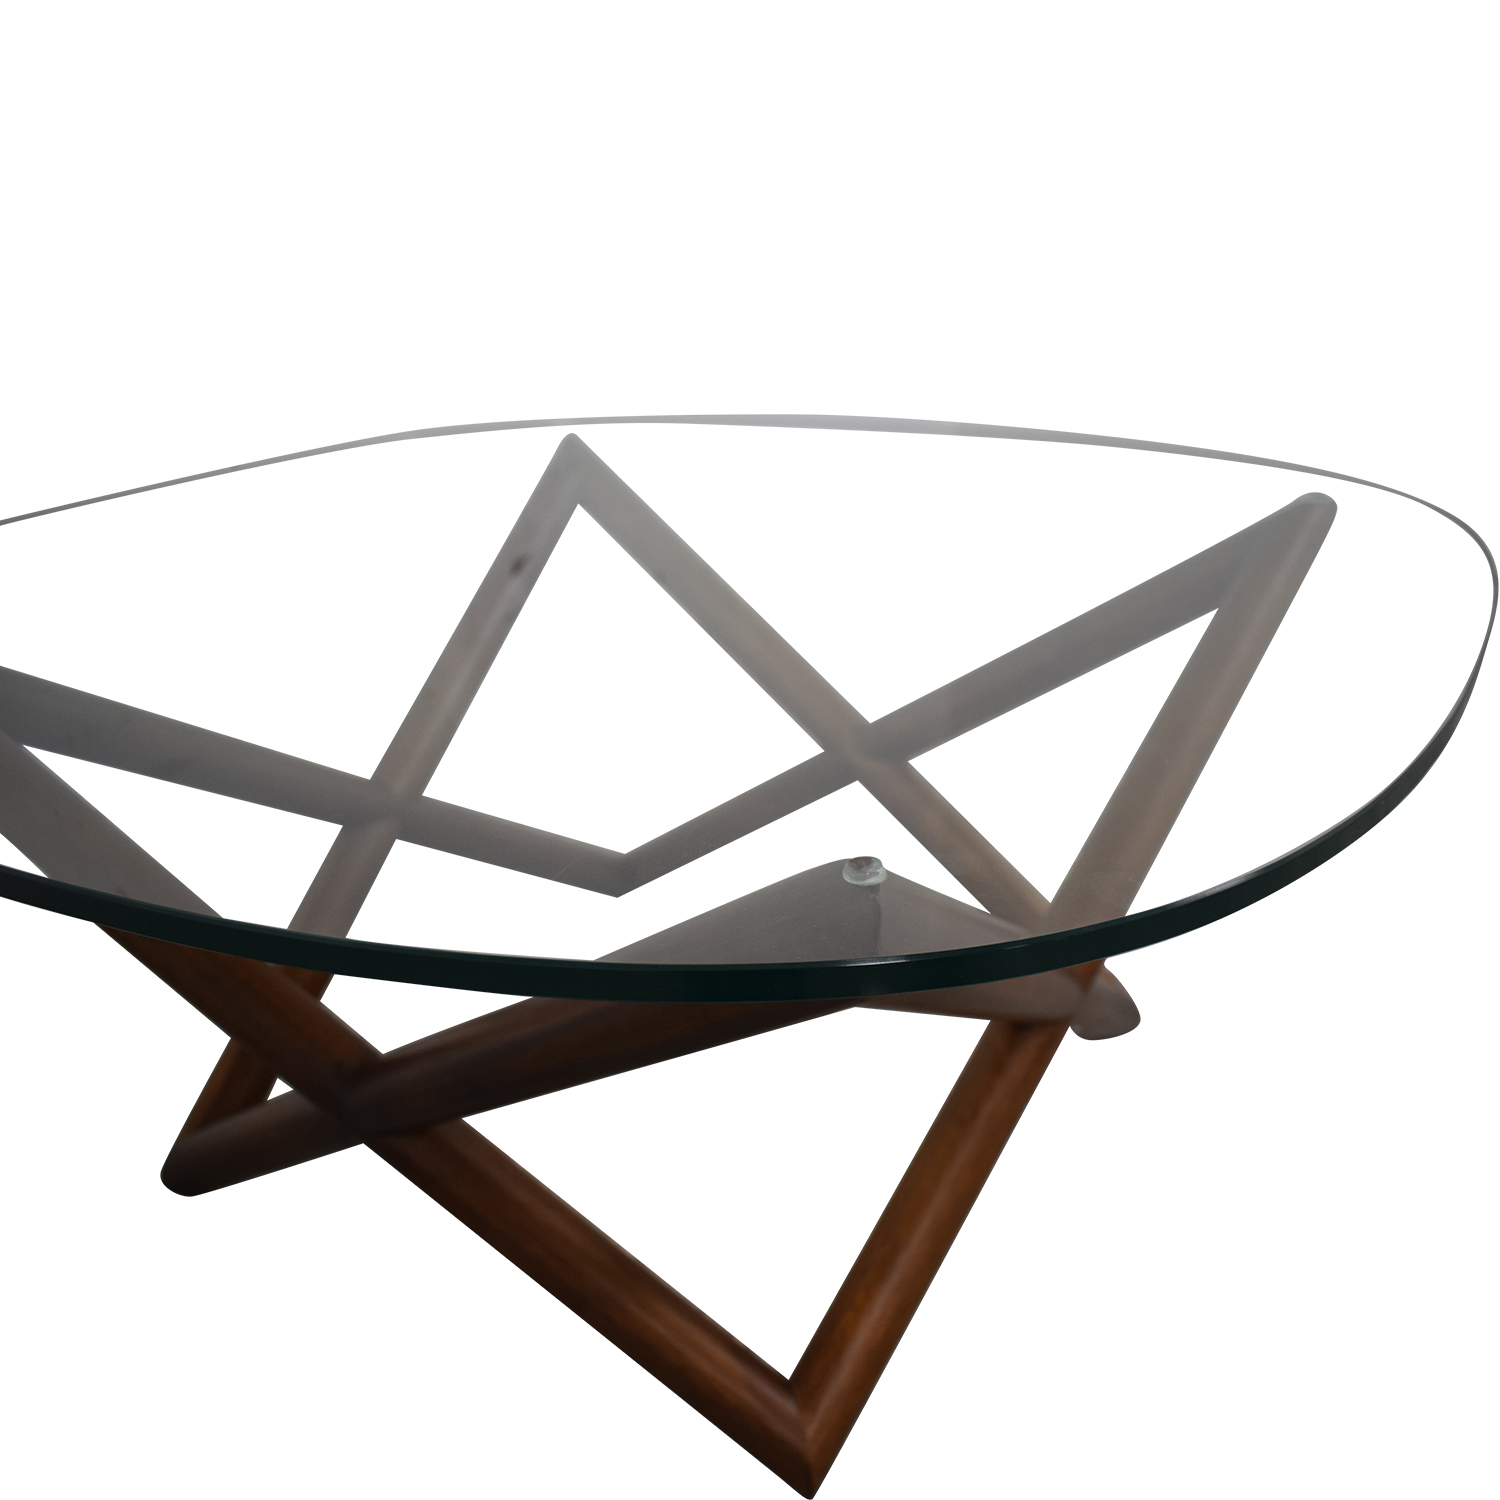 West Elm West Elm Spindle Glass Coffee Table dimensions